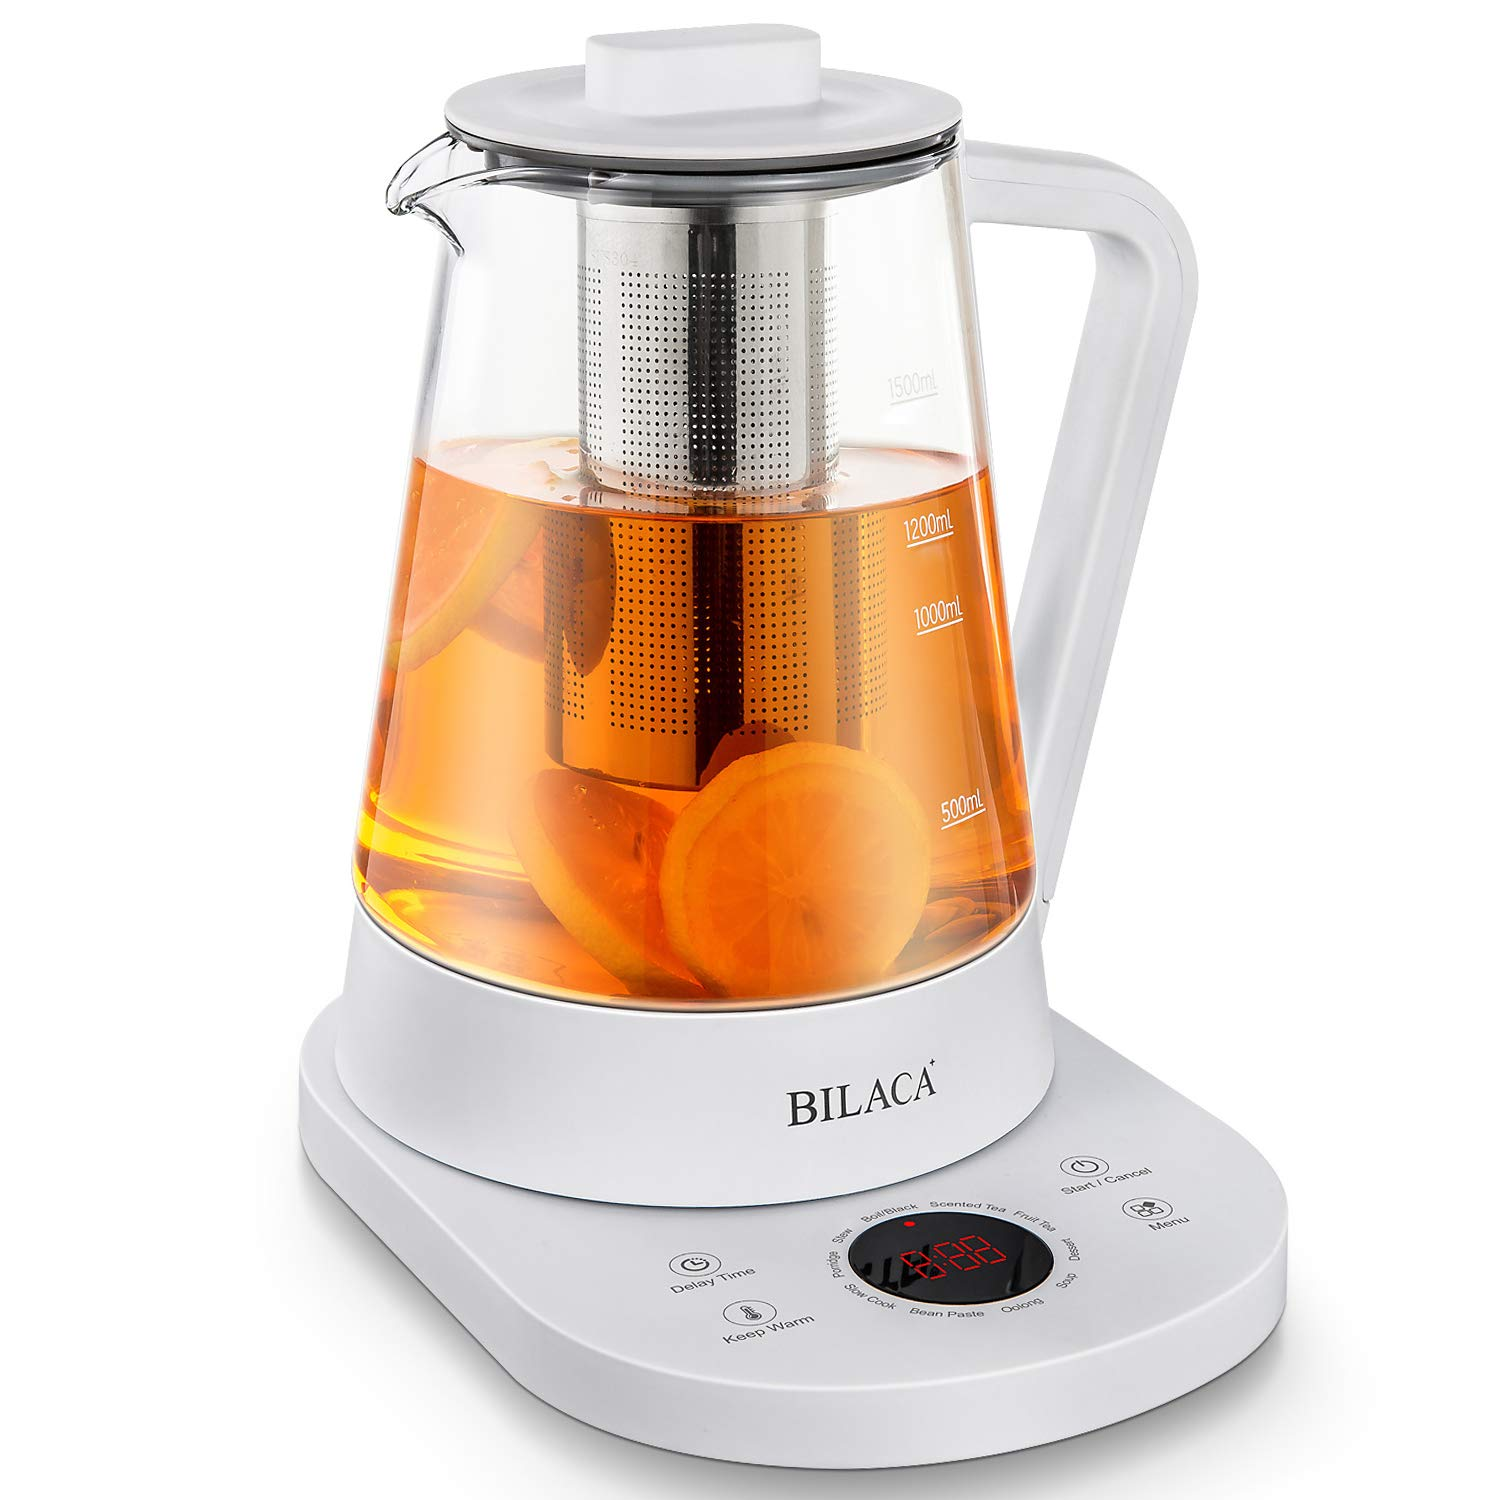 Electric Tea Maker And Kettle 1.5 Liter Glass BILACA Slow Cook Master With Temperature Control Panel Base One Touch Kitchen Health Pot for Tea Coffee Soup Dessert,White